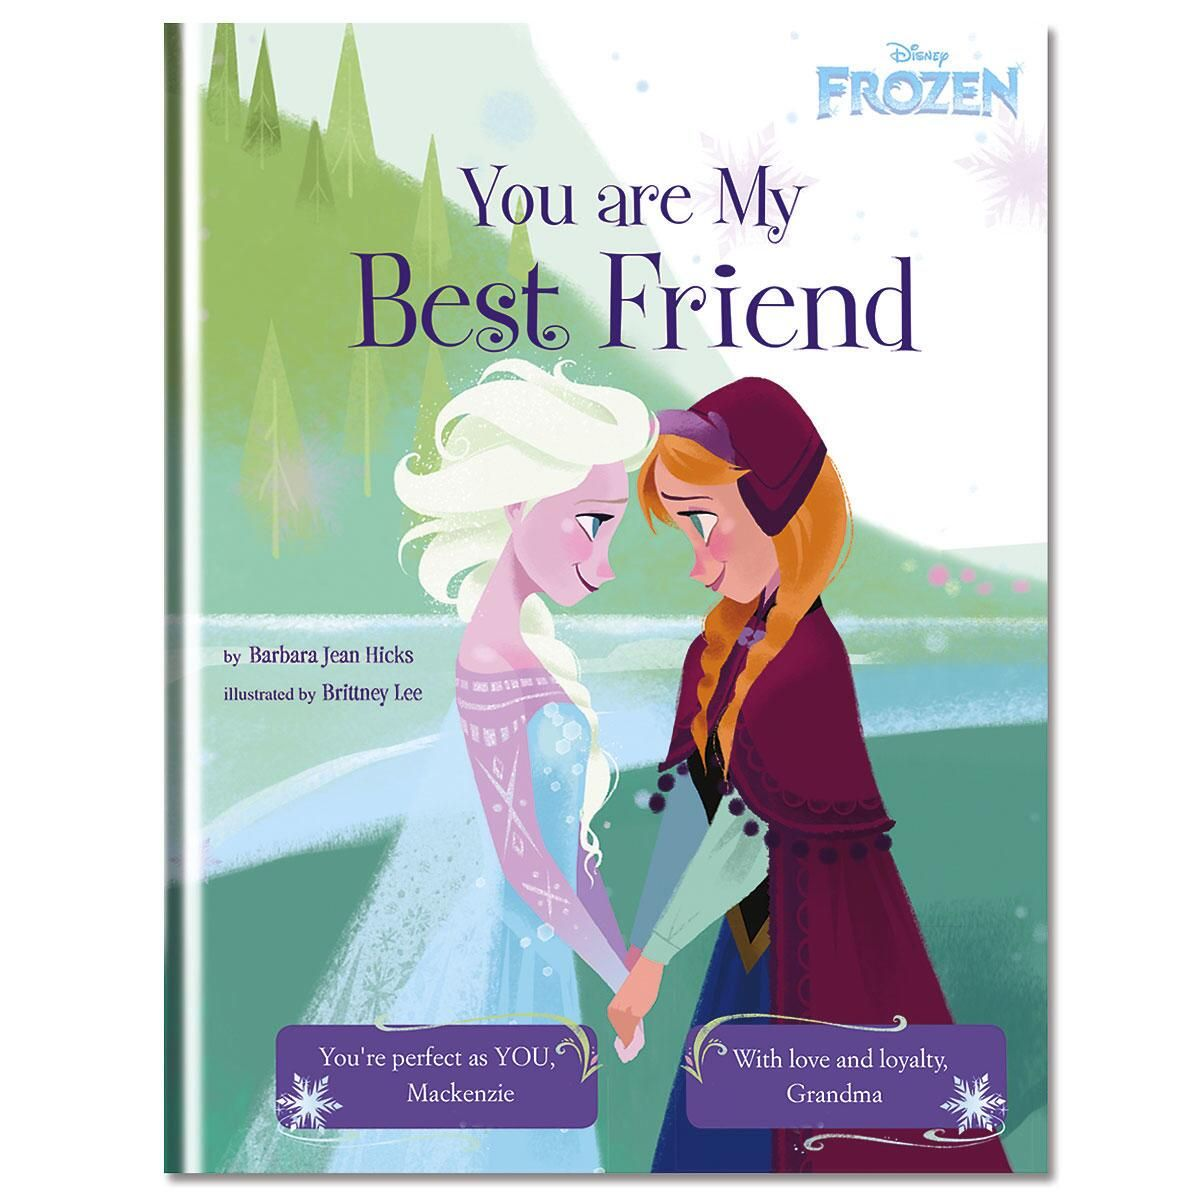 Disney® Frozen You Are My Best Friend Storybook